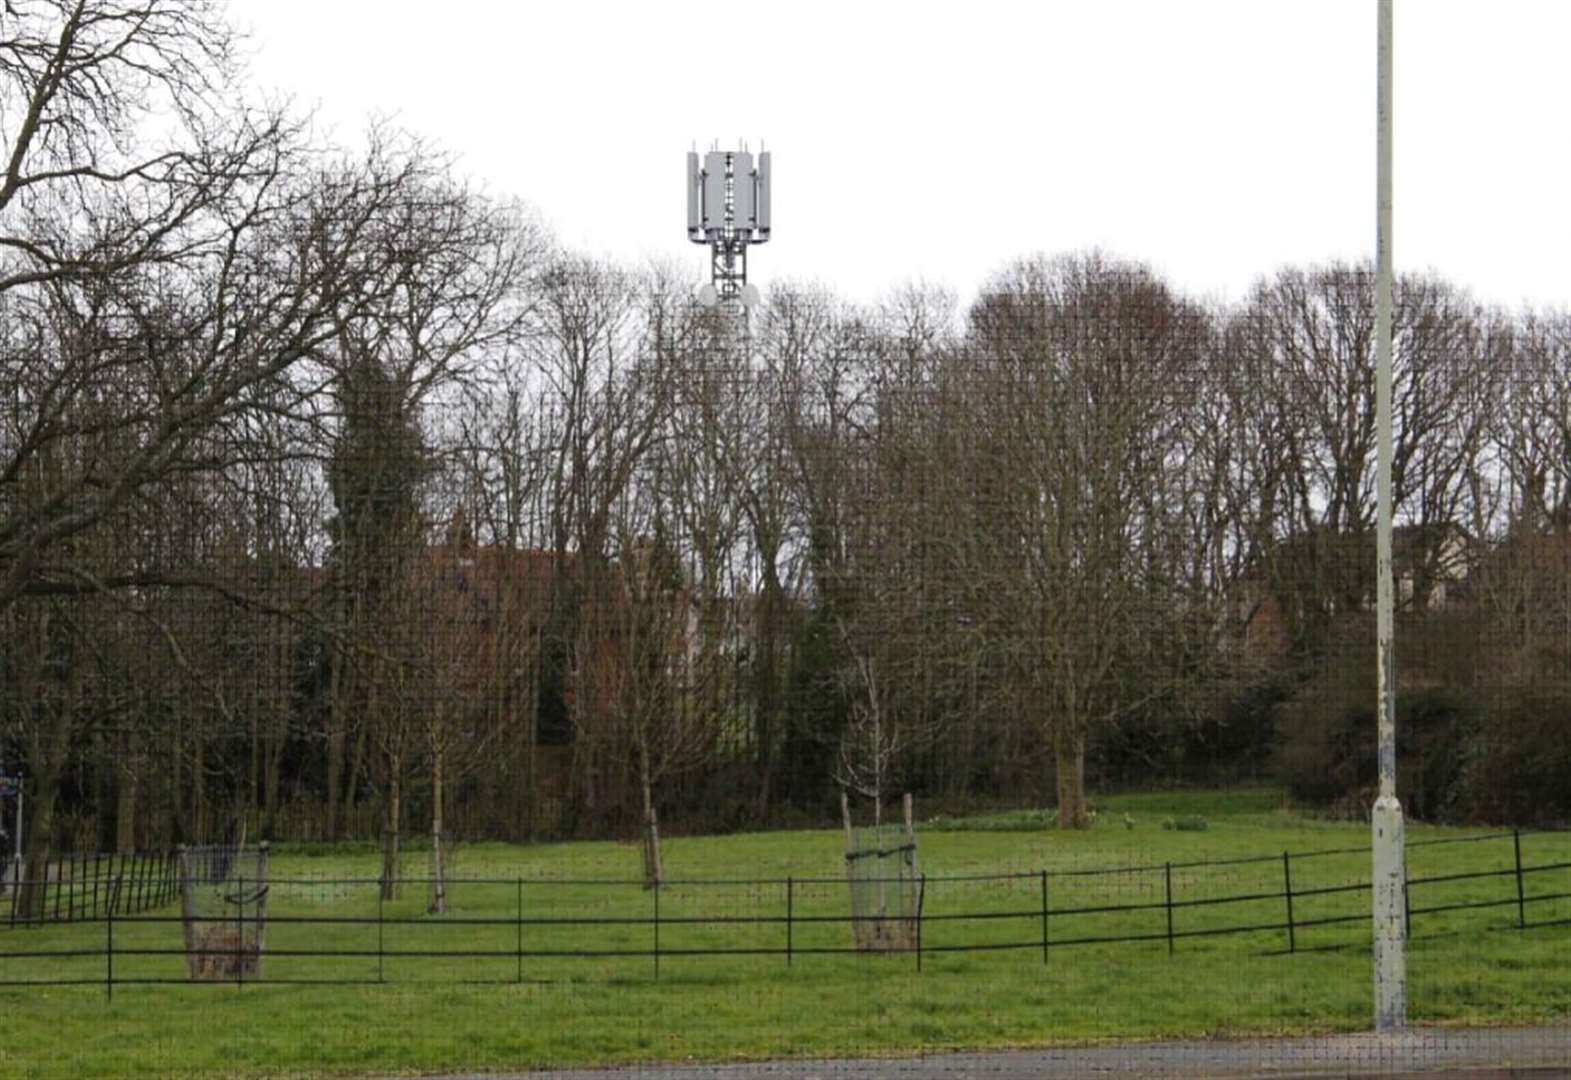 'Brontosaurus sized phone mast will ruin our village'